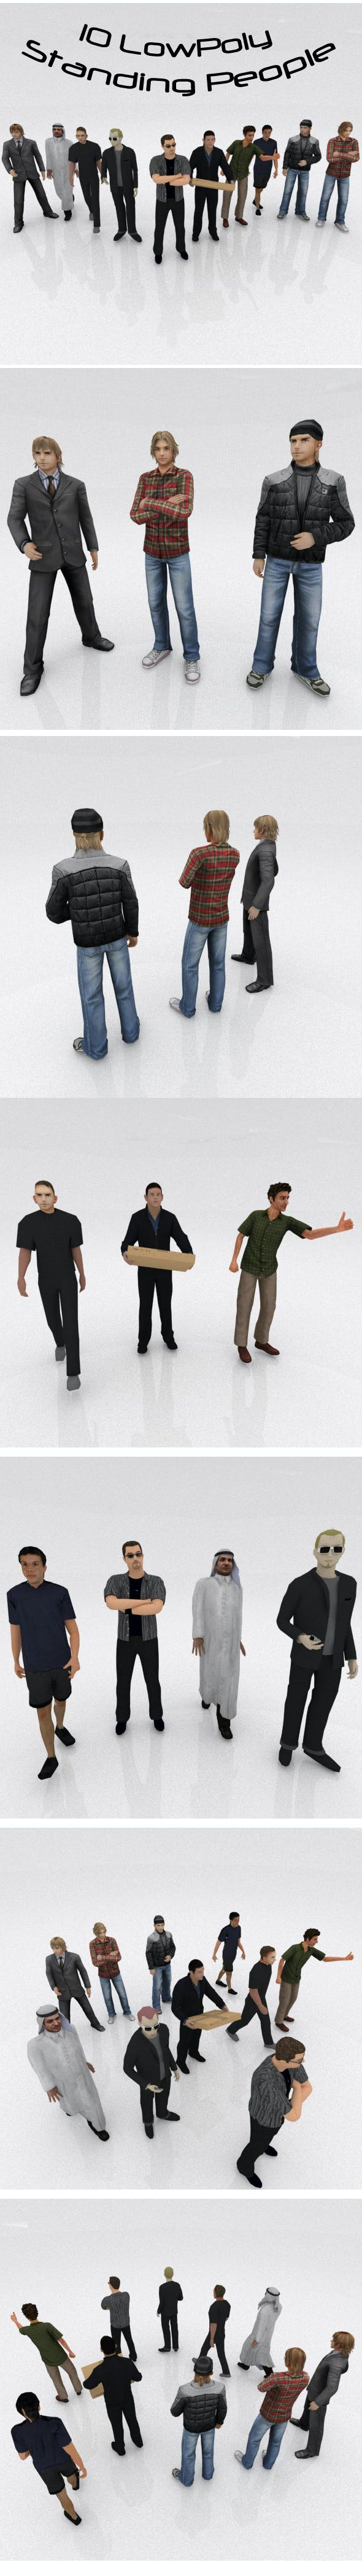 10 Low Poly Standing People - 3DOcean Item for Sale